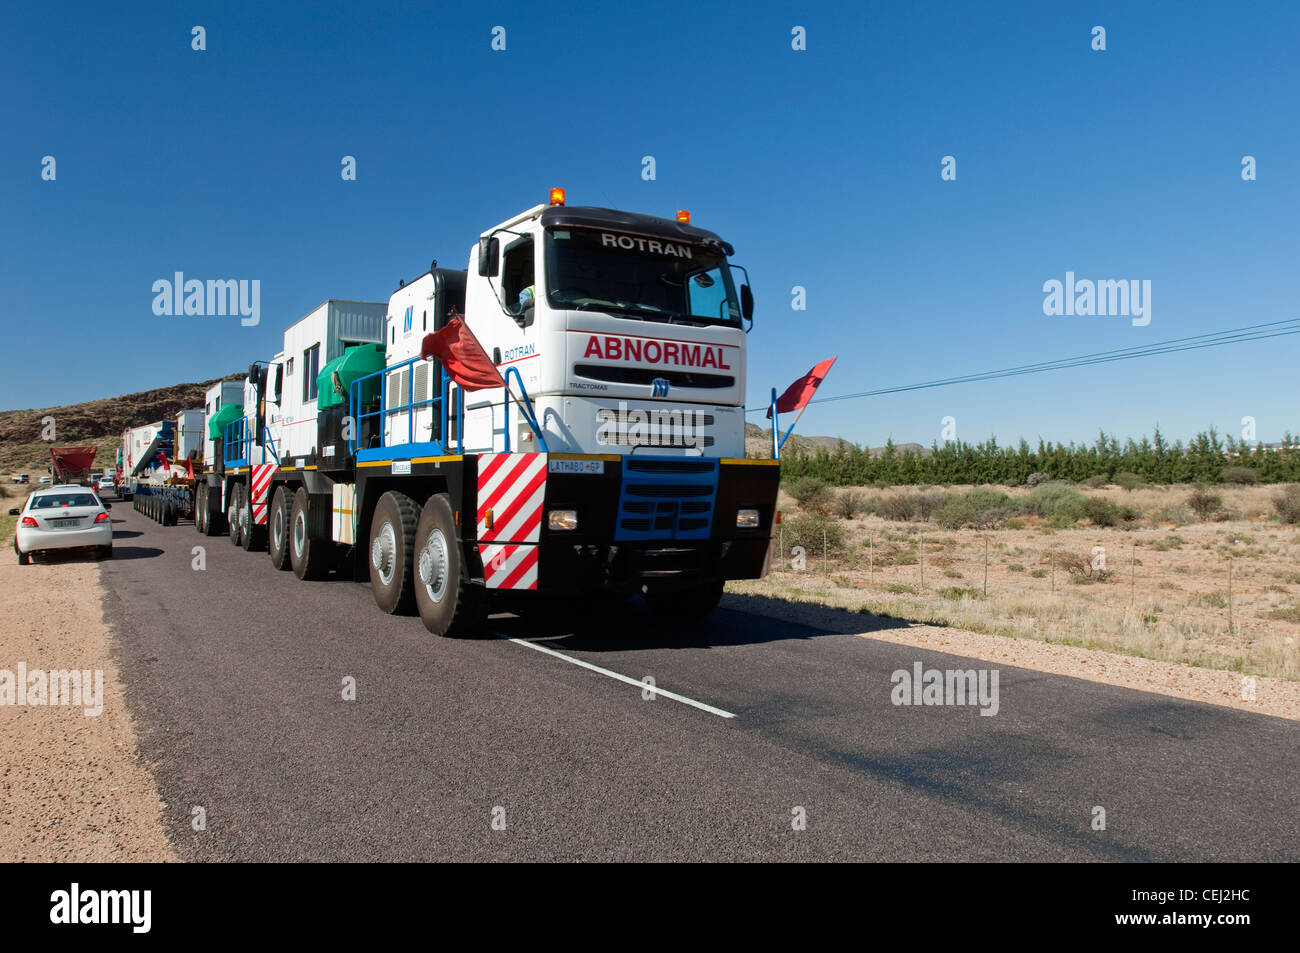 Truck bearing abnormal load on Road,Northern Cape - Stock Image